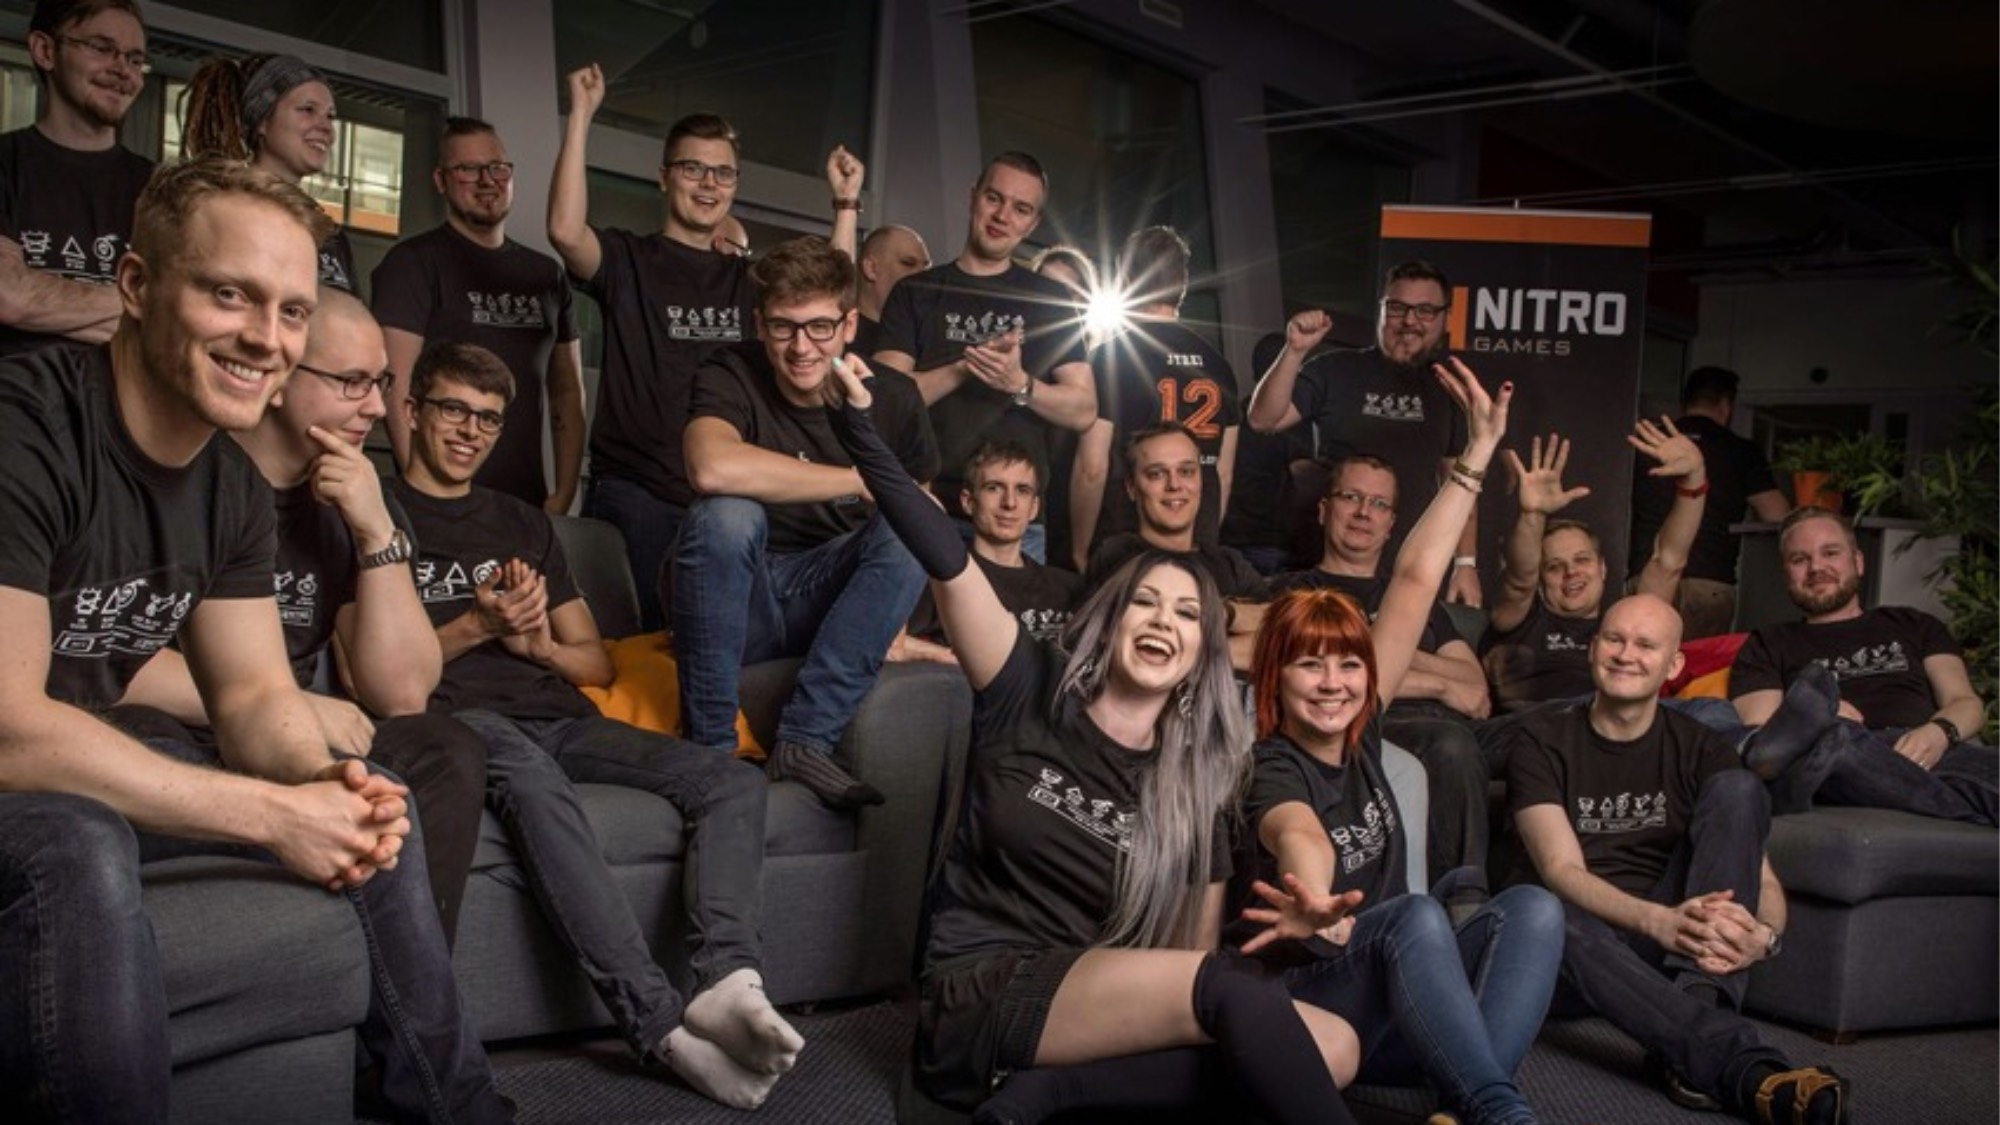 Nitro Games staff cheering